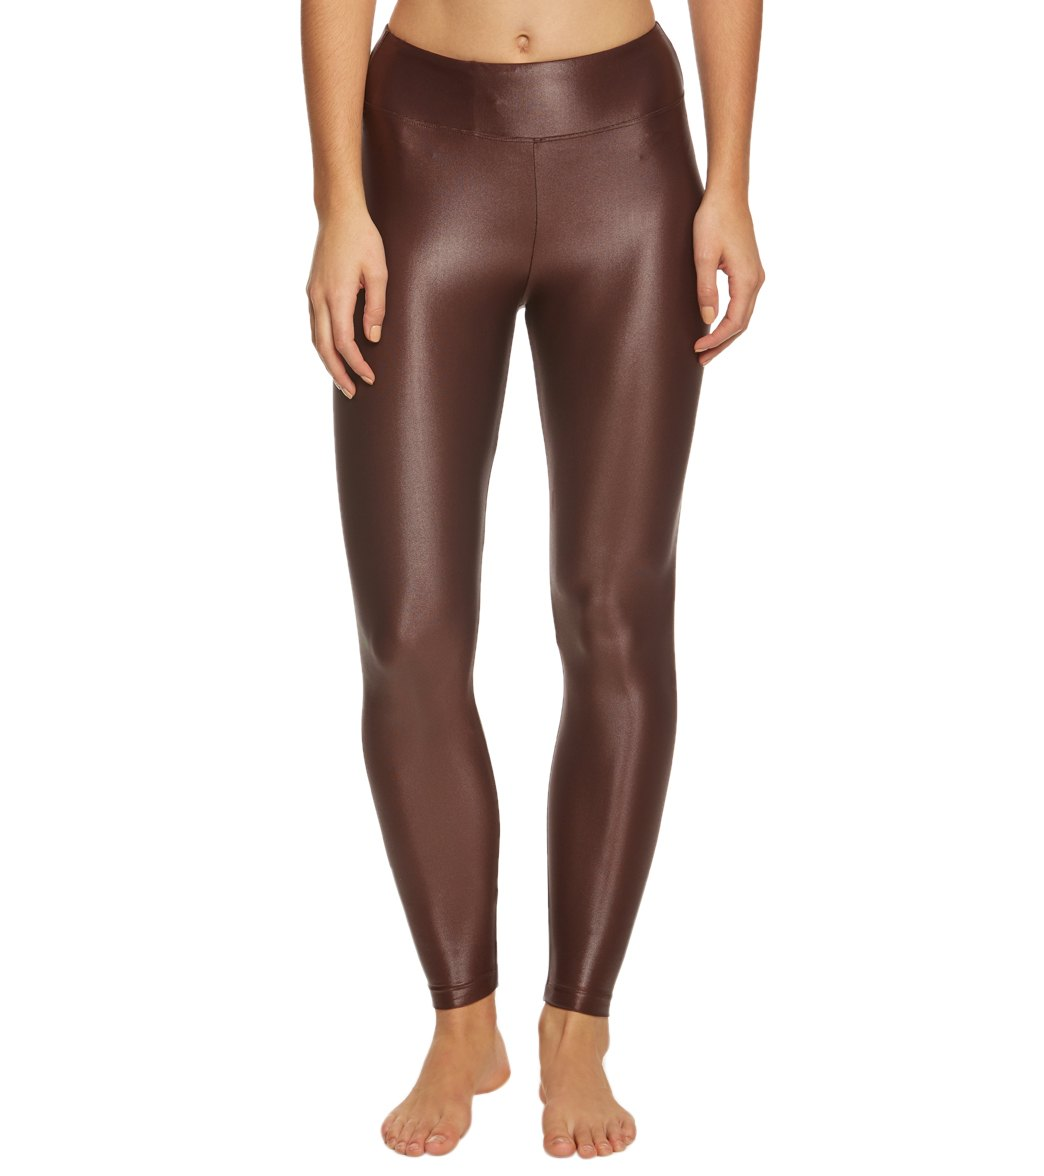 KORAL Lustrous High Rise Yoga Leggings - Bordeaux Spandex